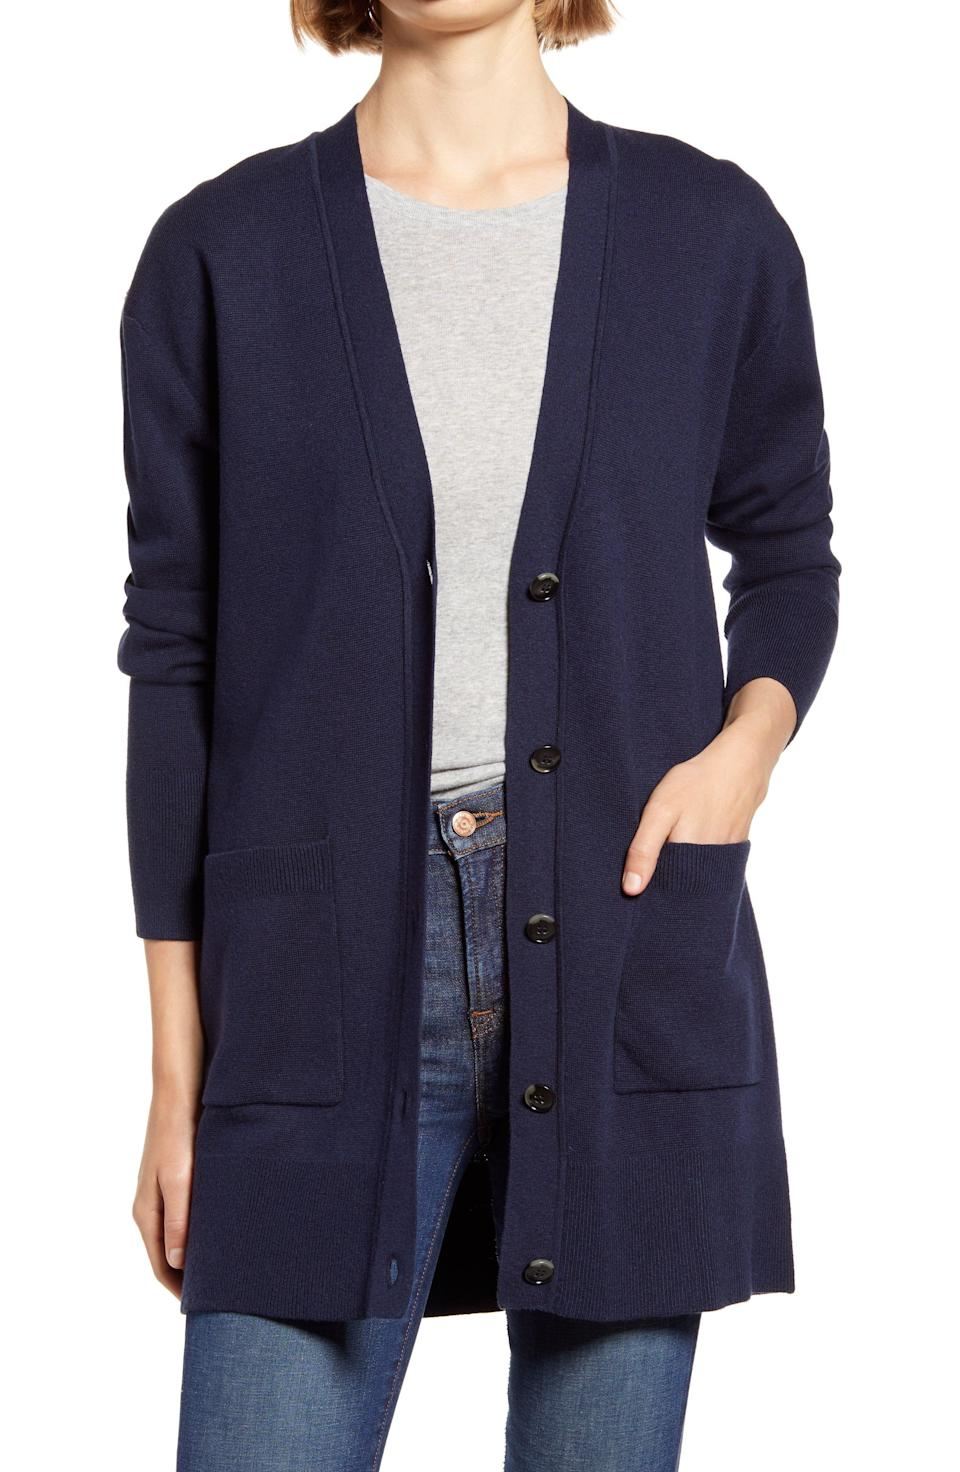 """<p><strong>J.CREW</strong></p><p>nordstrom.com</p><p><strong>$78.90</strong></p><p><a href=""""https://go.redirectingat.com?id=74968X1596630&url=https%3A%2F%2Fwww.nordstrom.com%2Fs%2Fj-crew-v-neck-long-cardigan-regular-plus-size-nordstrom-exclusive%2F5579292&sref=https%3A%2F%2Fwww.goodhousekeeping.com%2Fclothing%2Fg33473194%2Ftransitional-clothing-summer-to-fall%2F"""" rel=""""nofollow noopener"""" target=""""_blank"""" data-ylk=""""slk:Shop Now"""" class=""""link rapid-noclick-resp"""">Shop Now</a></p><p>If there's anything that's an essential summer-to-fall wardrobe piece, it's the reliable (and super cozy!) cardigan. Just throw it on over a cami, tee, or dress and watch it instantly transition your outfit to a fall-ready look.</p><p><strong>RELATED:</strong> <a href=""""https://www.goodhousekeeping.com/beauty/fashion/g33275801/cute-fall-outfits/"""" rel=""""nofollow noopener"""" target=""""_blank"""" data-ylk=""""slk:20 Cute Fall Outfits That Will Keep Your Warm, Cozy, and Stylish"""" class=""""link rapid-noclick-resp"""">20 Cute Fall Outfits That Will Keep Your Warm, Cozy, and Stylish</a></p>"""